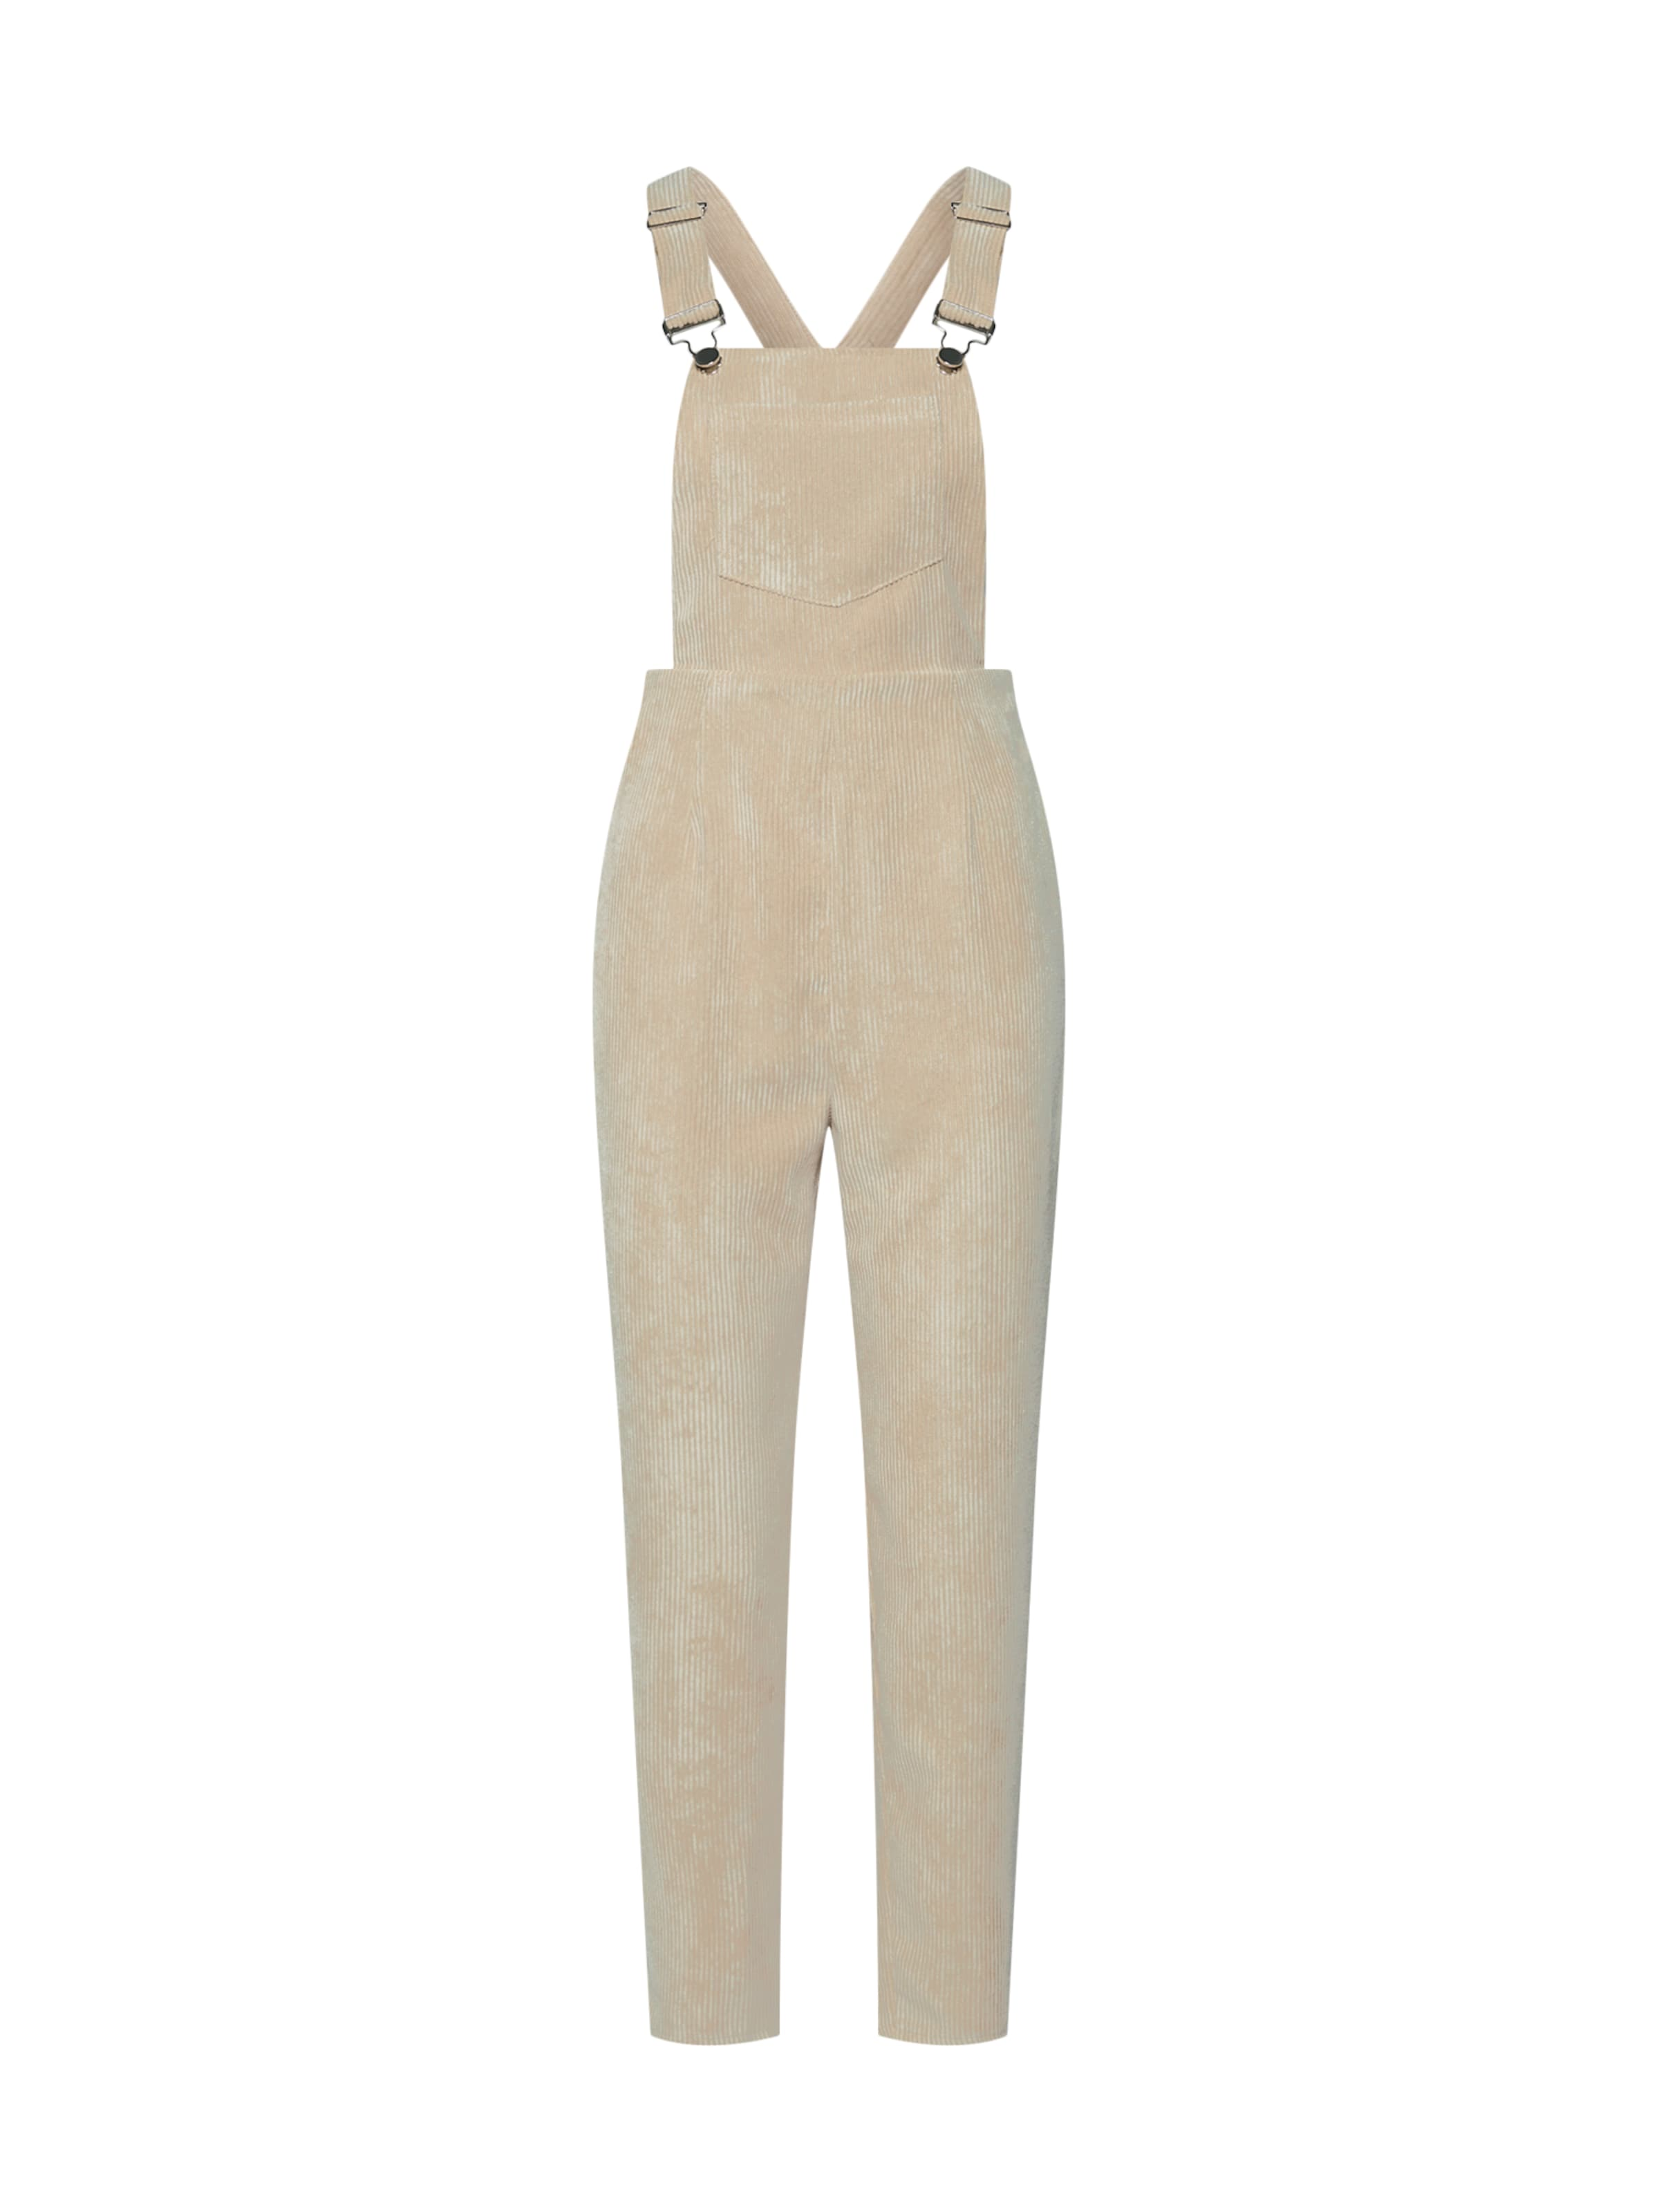 Pierre En 'cord Salopette Jumpsuit' Missguided Dungaree 9W2YEHDI